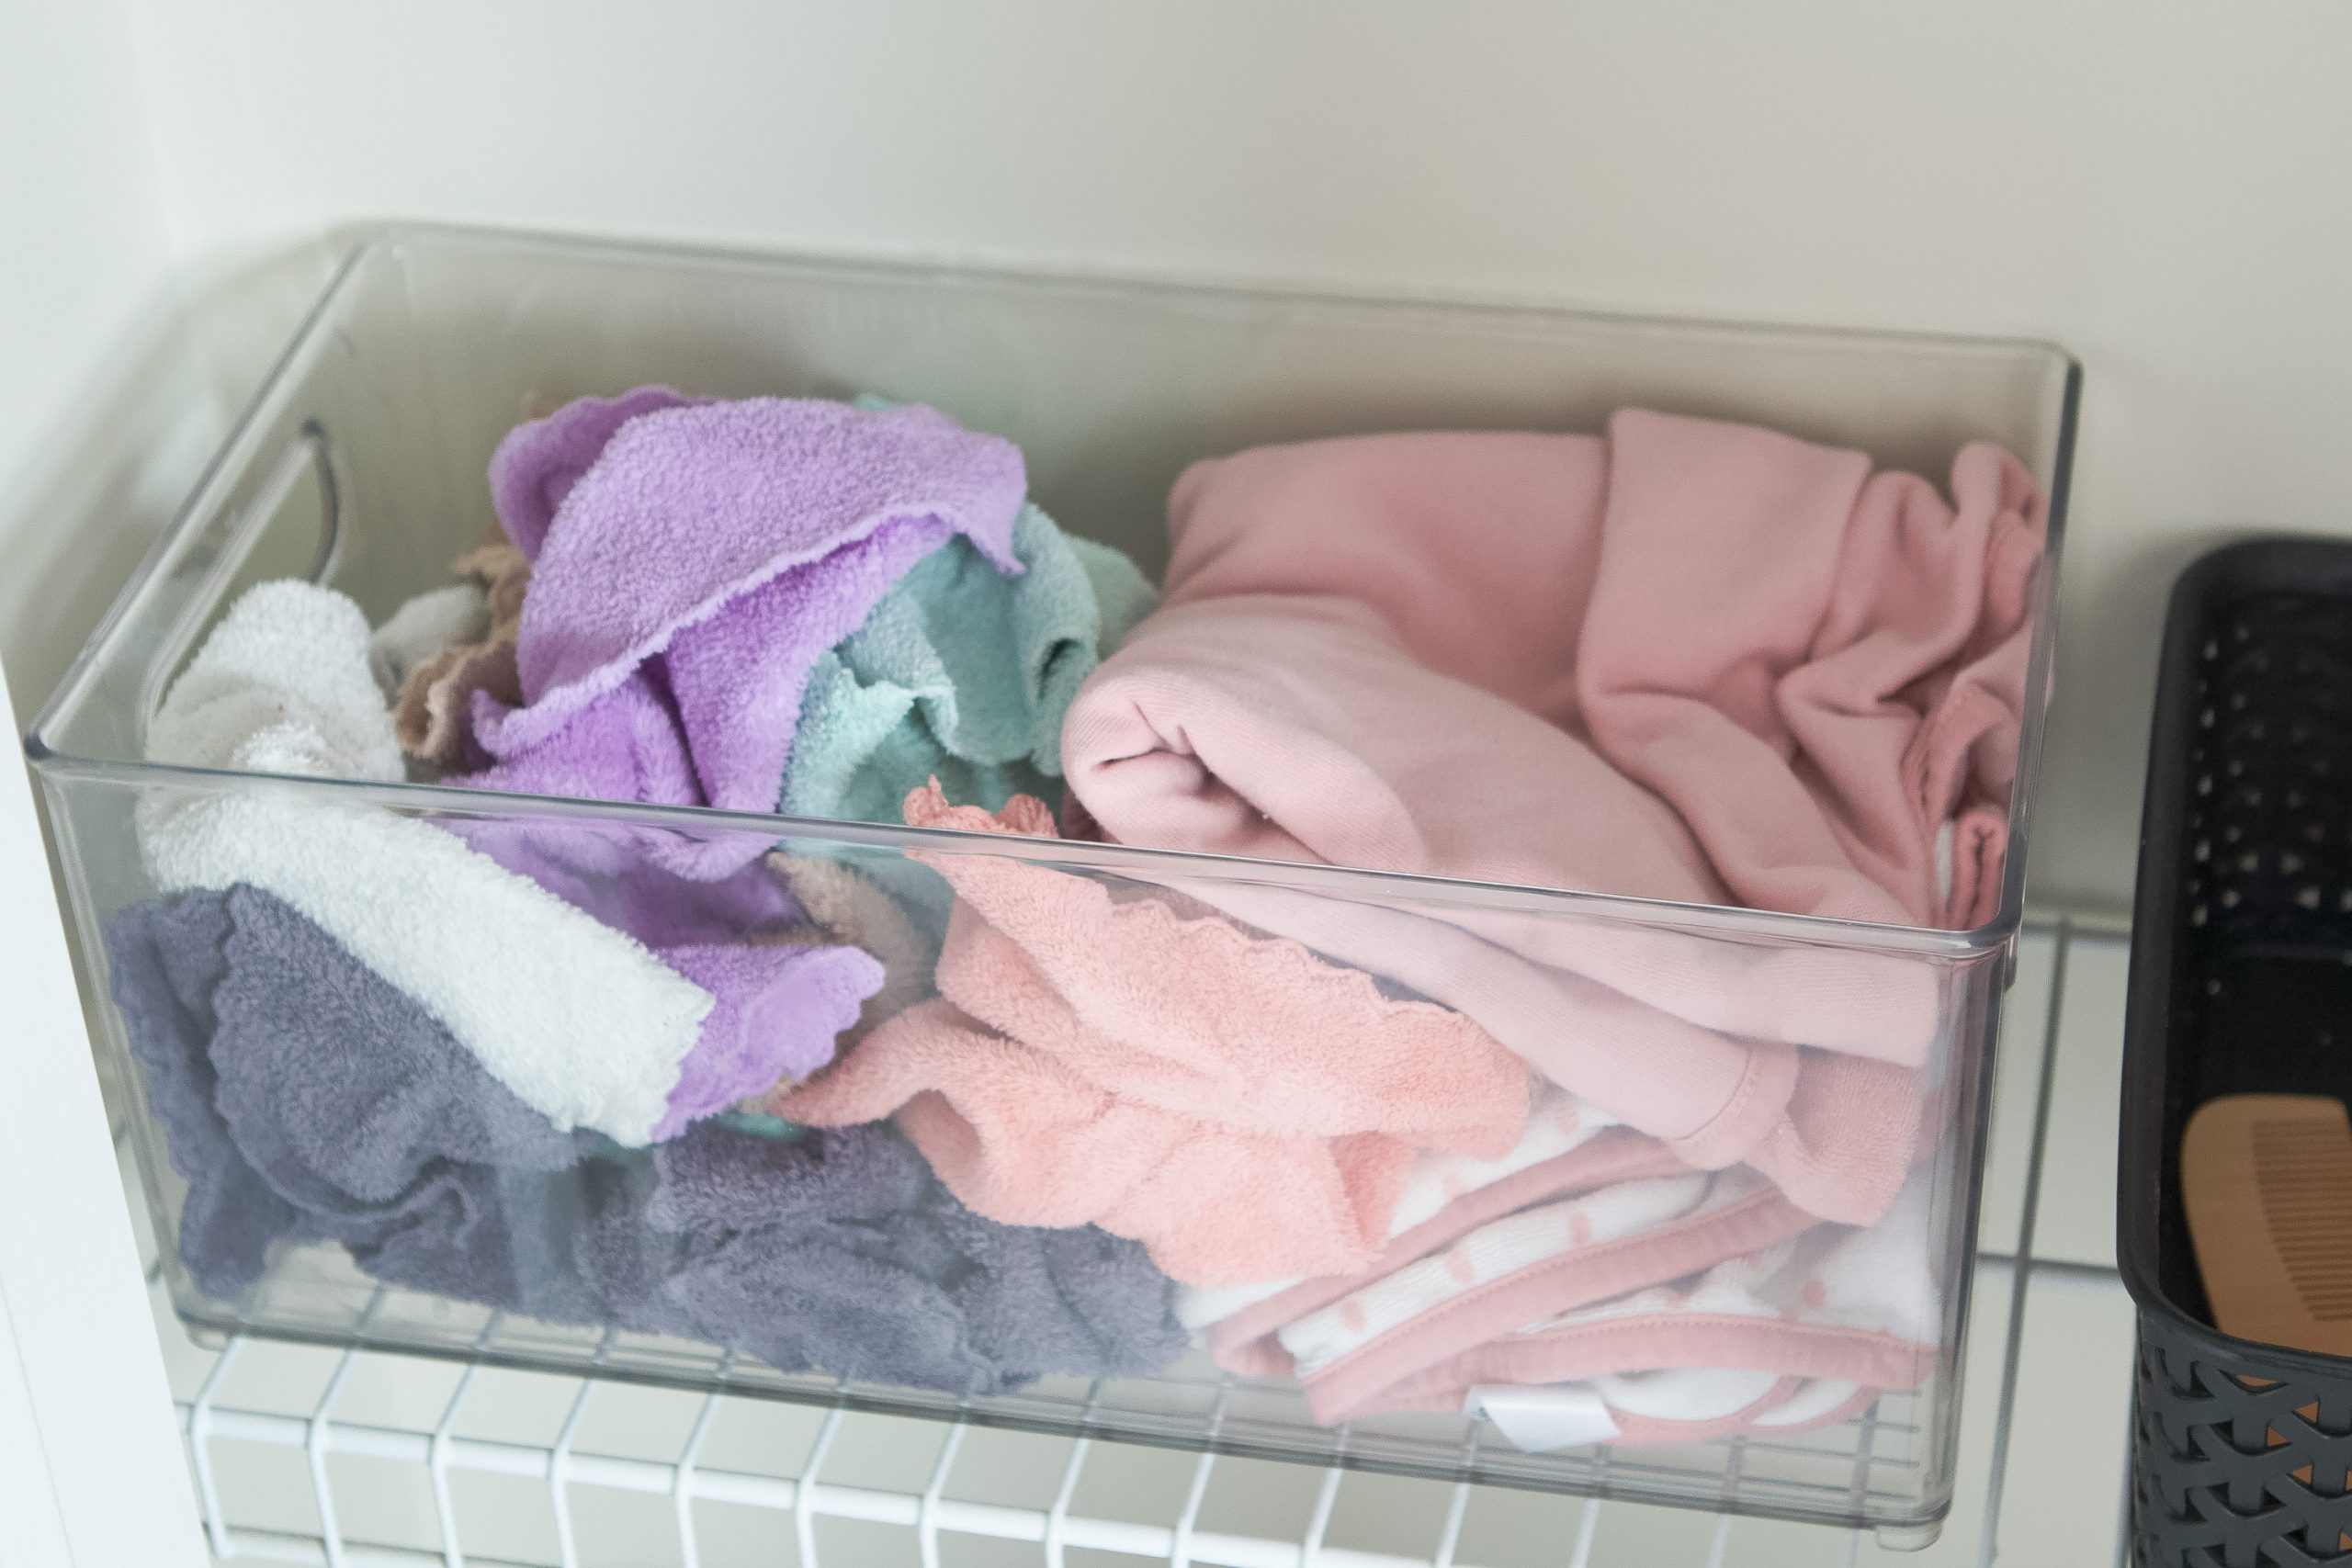 Rory's bath items in the closet